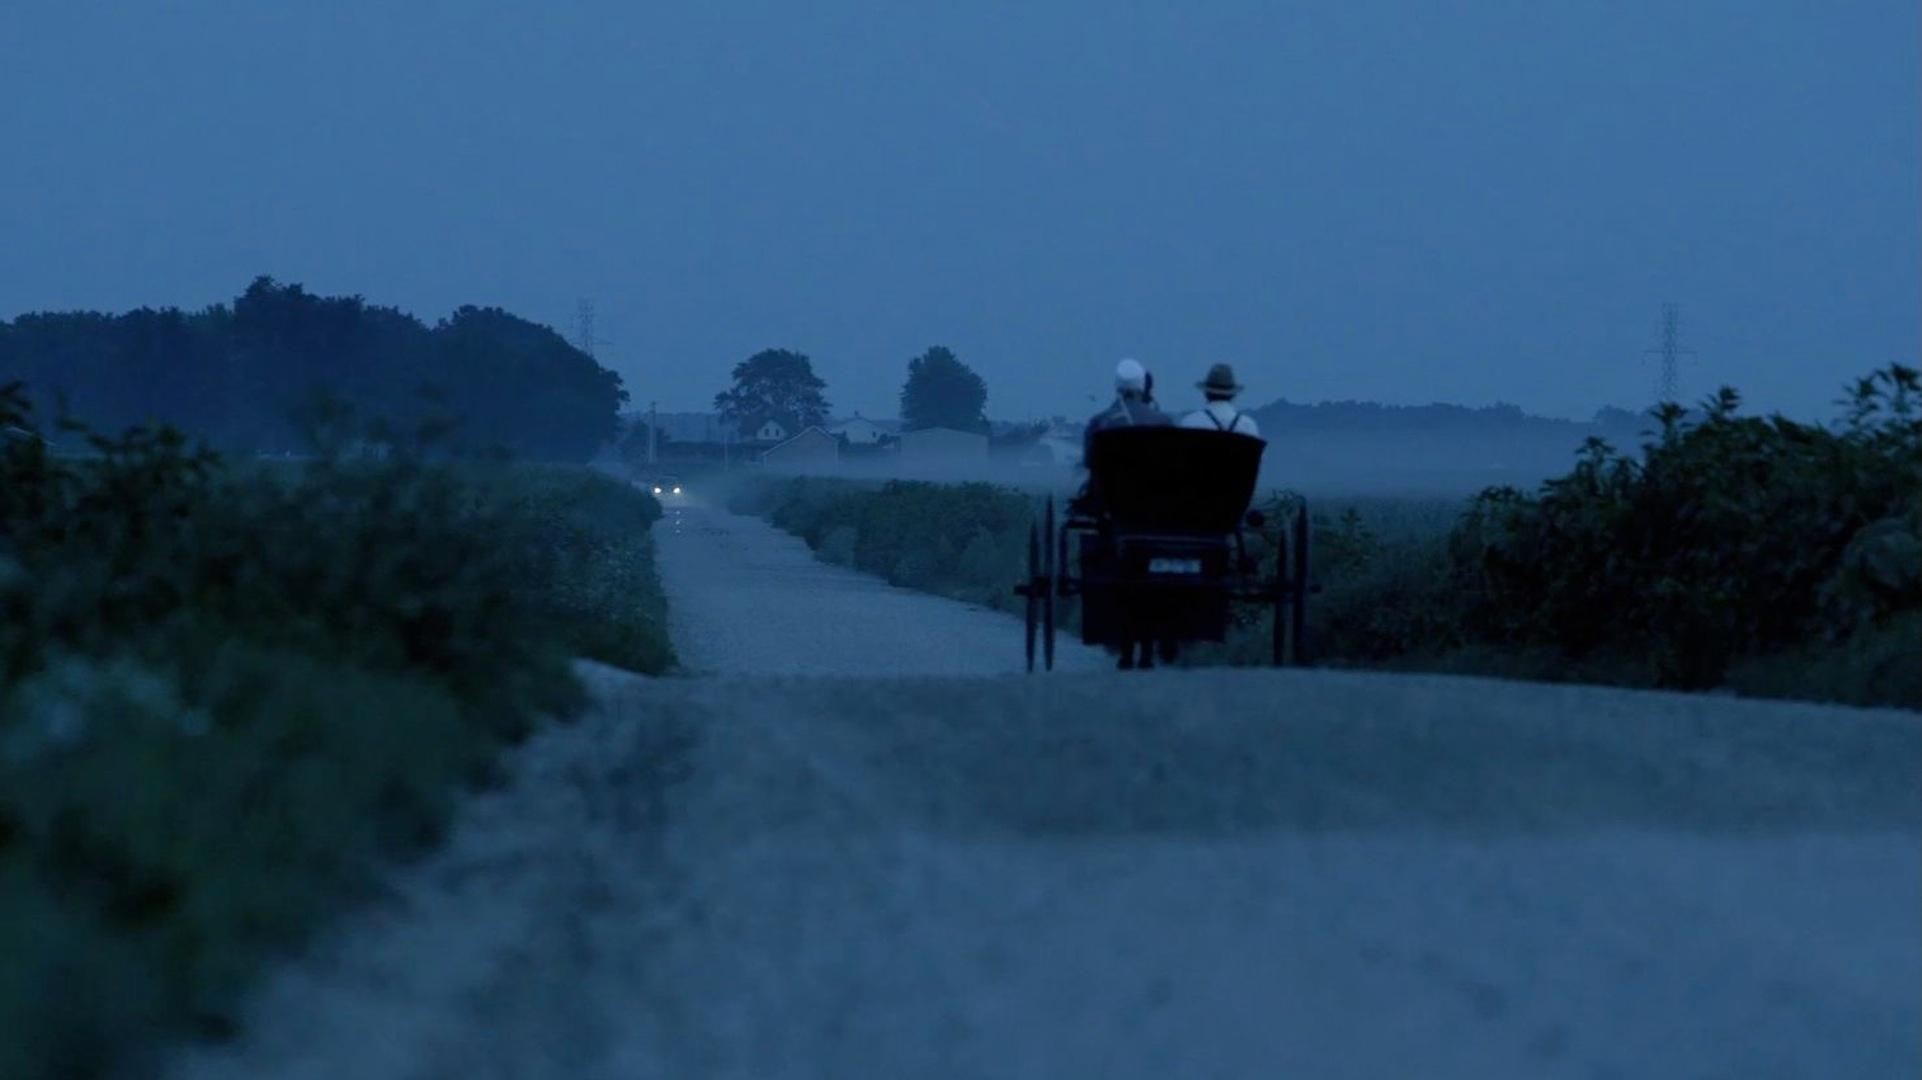 The Amish: Shunned, Extended Preview